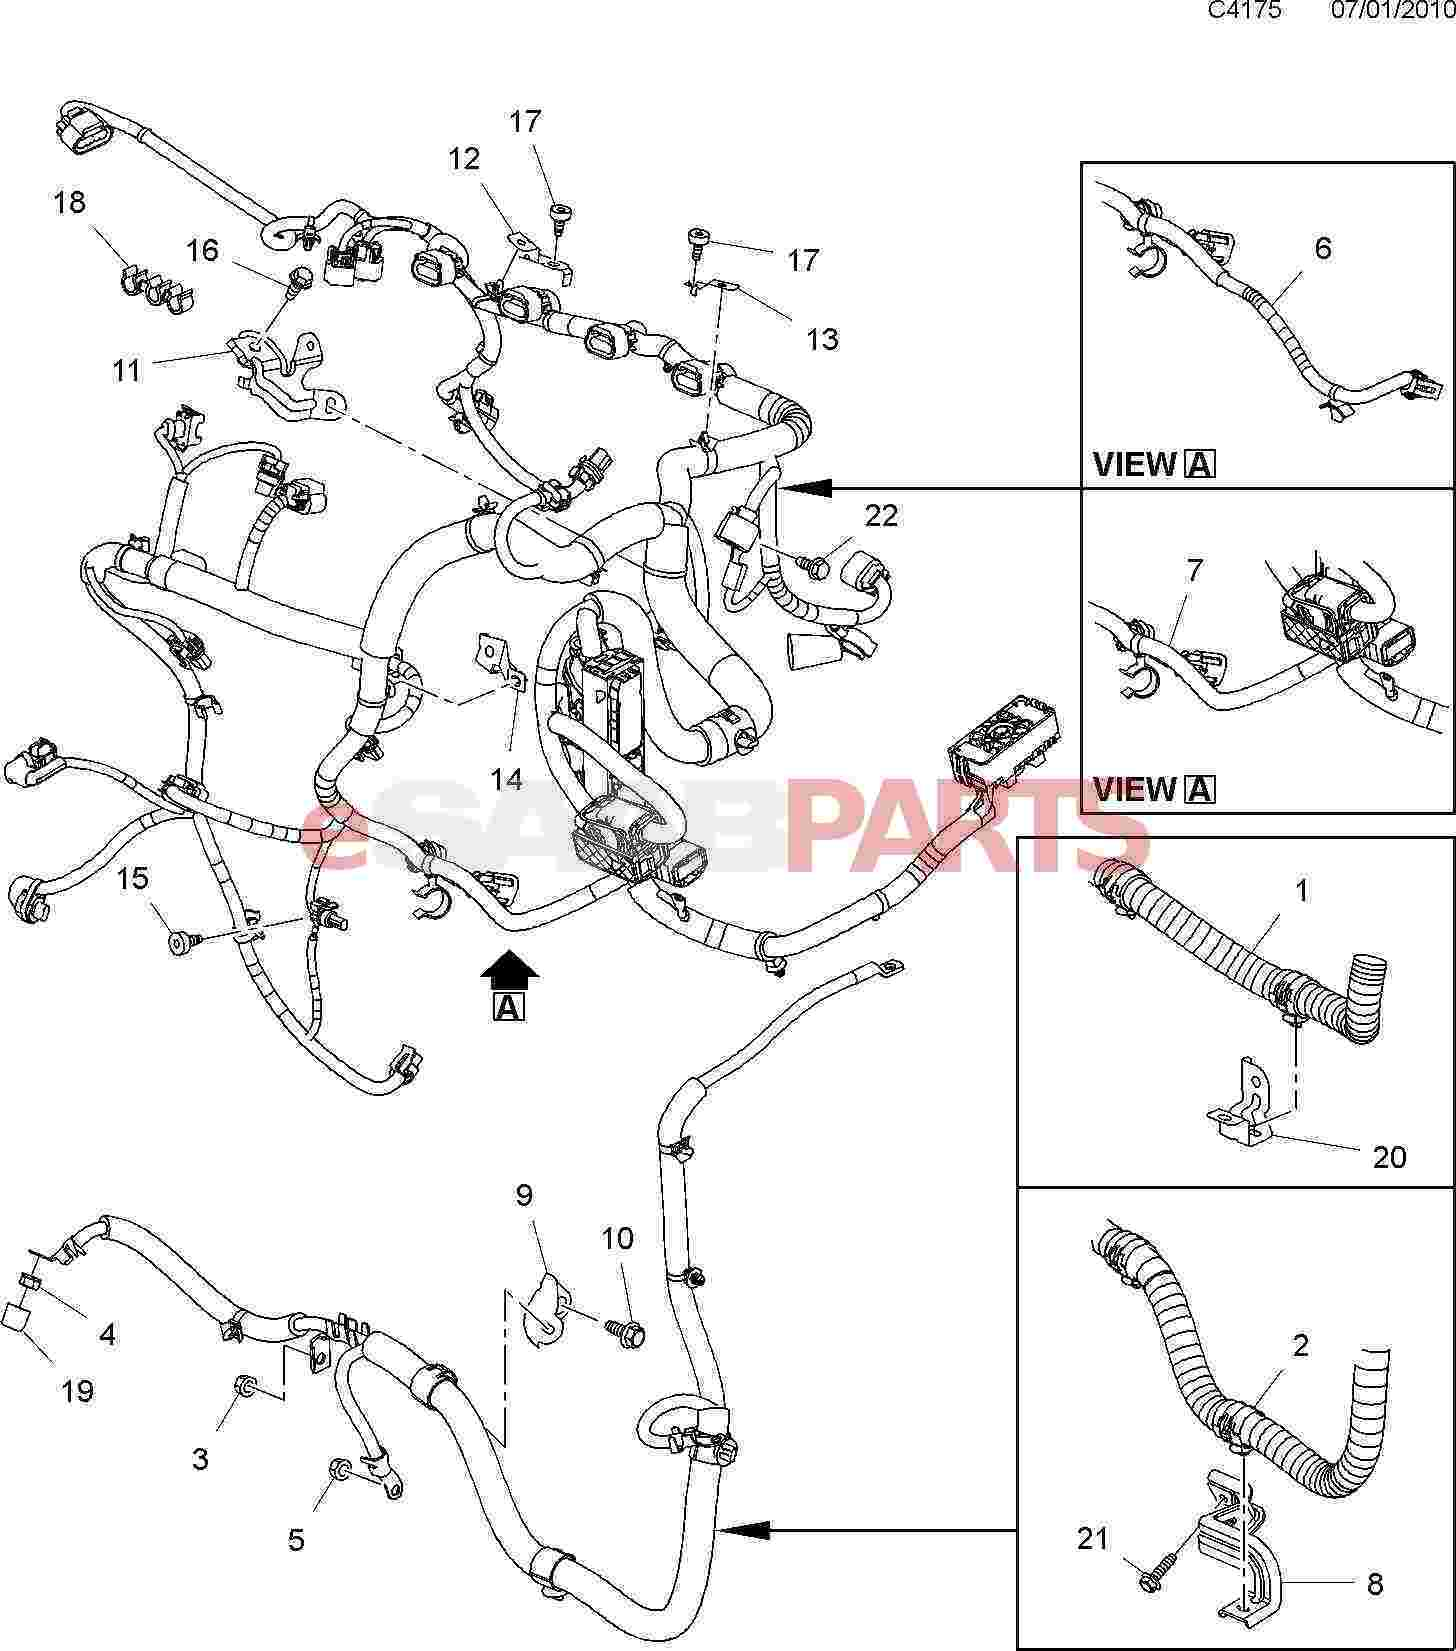 Saab Wiring Harness Library Electrical Diagrams Esaabpartscom 9 5 650 Parts